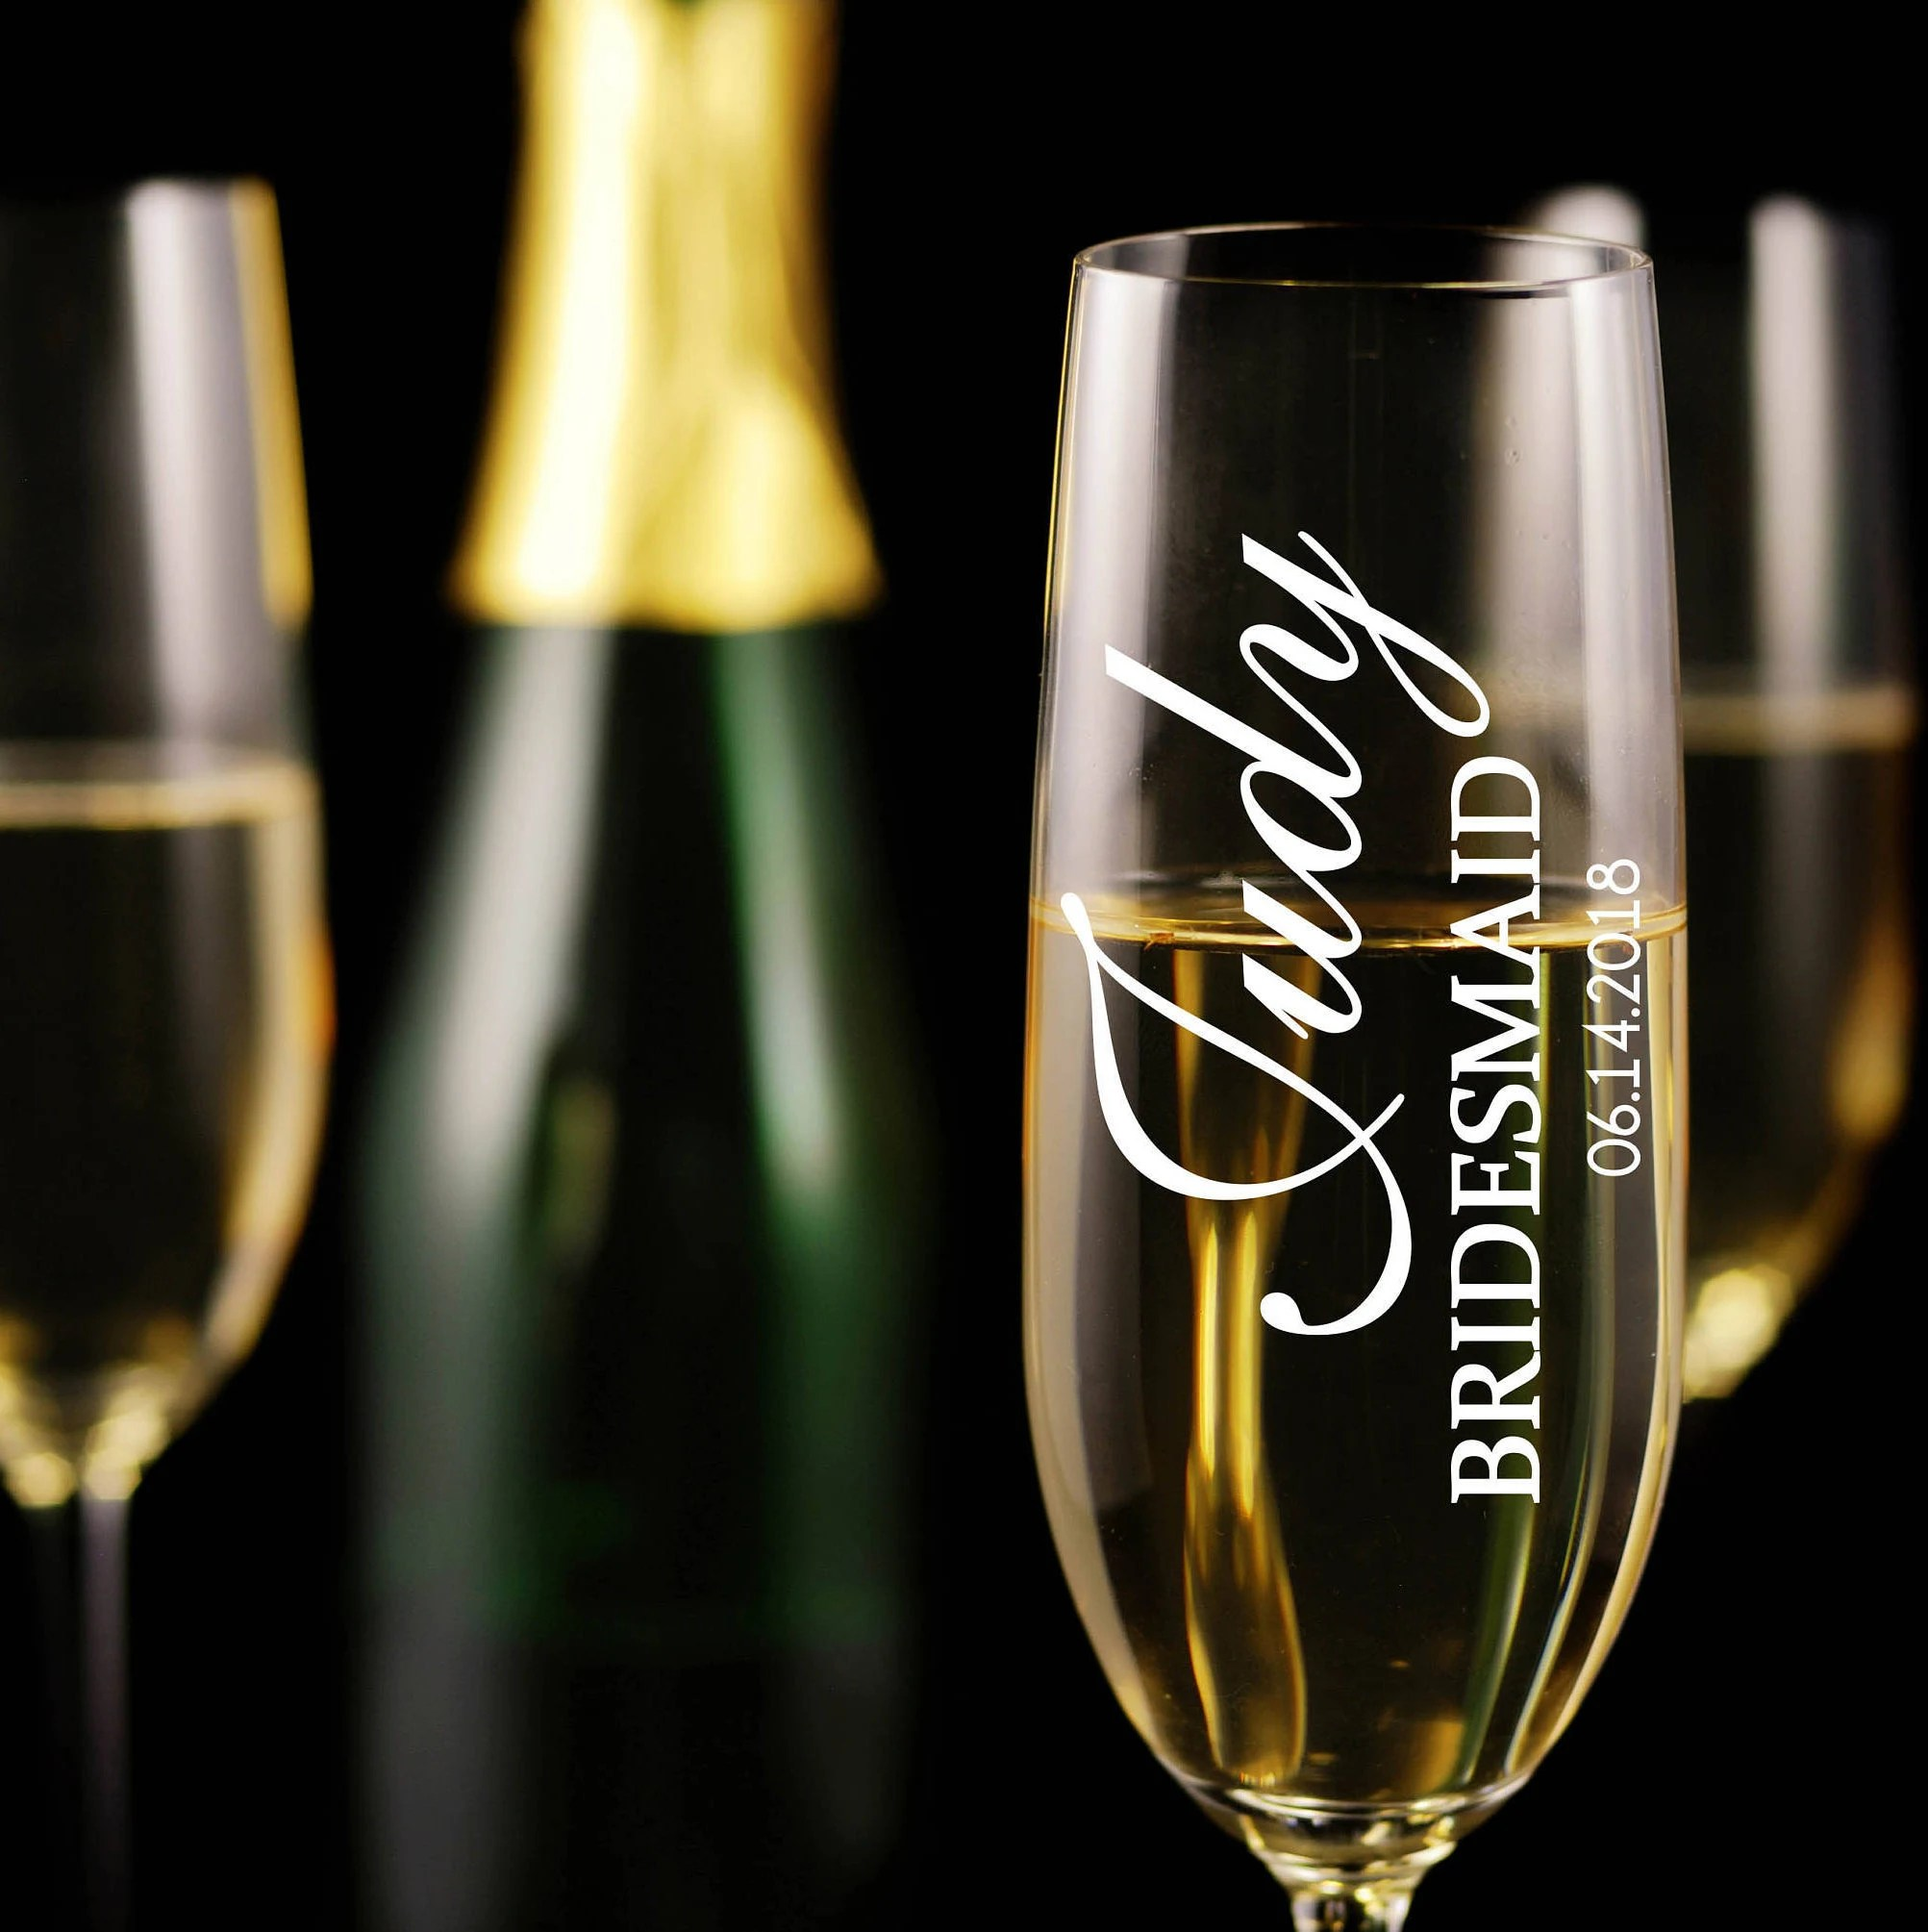 Peculiar Personalized Champagne Flutes Bridesmaid Gifts Custom Champagne Personalized Champagne Flutes Bridesmaid Gifts Custom Champagne Glassescustom Engraved Wedding Glasses Toasting Flutes Set inspiration Personalized Champagne Flutes